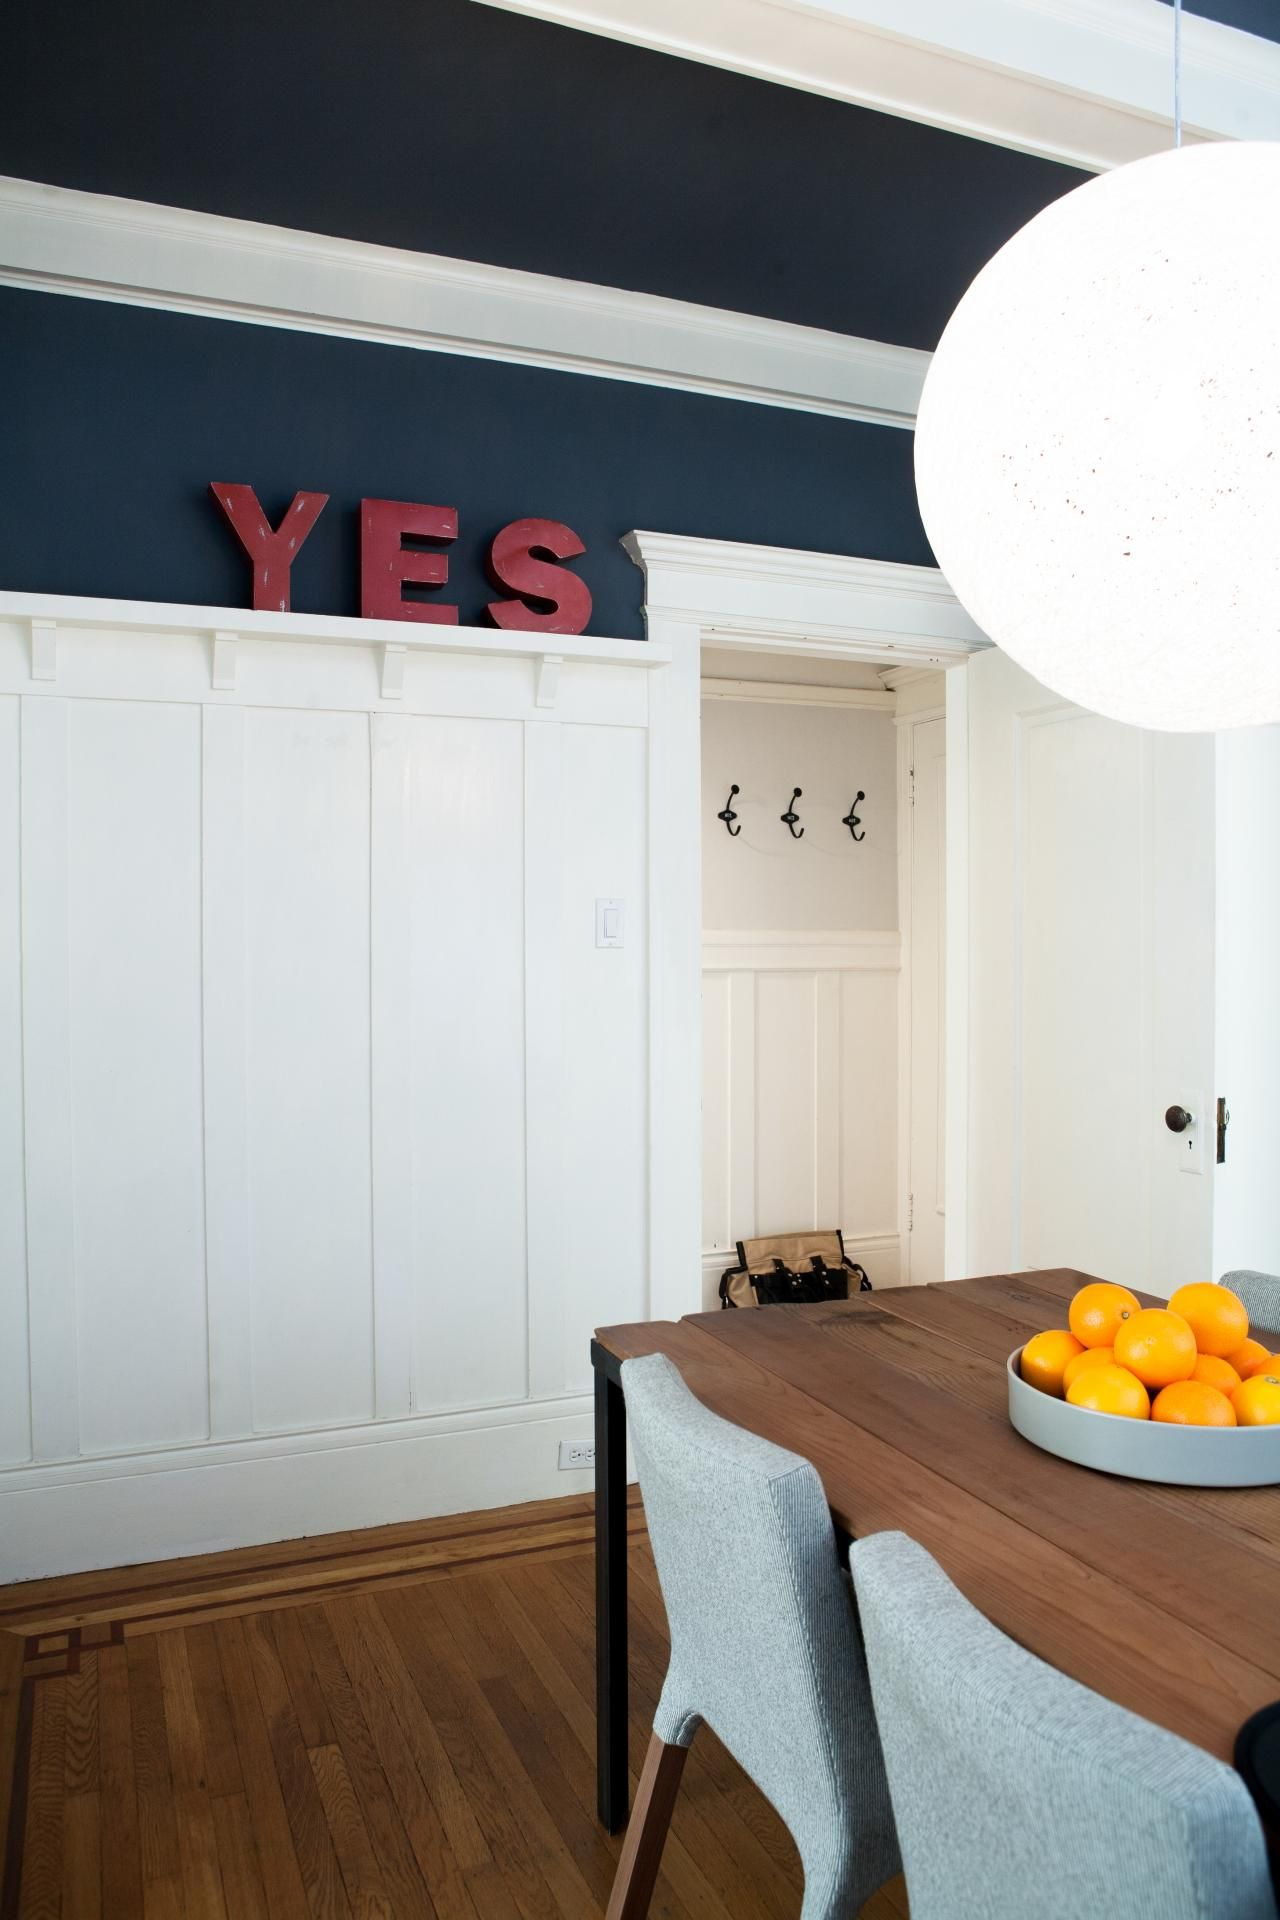 Best Use of Color | Pinterest | Hgtv, Spaces and Navy walls